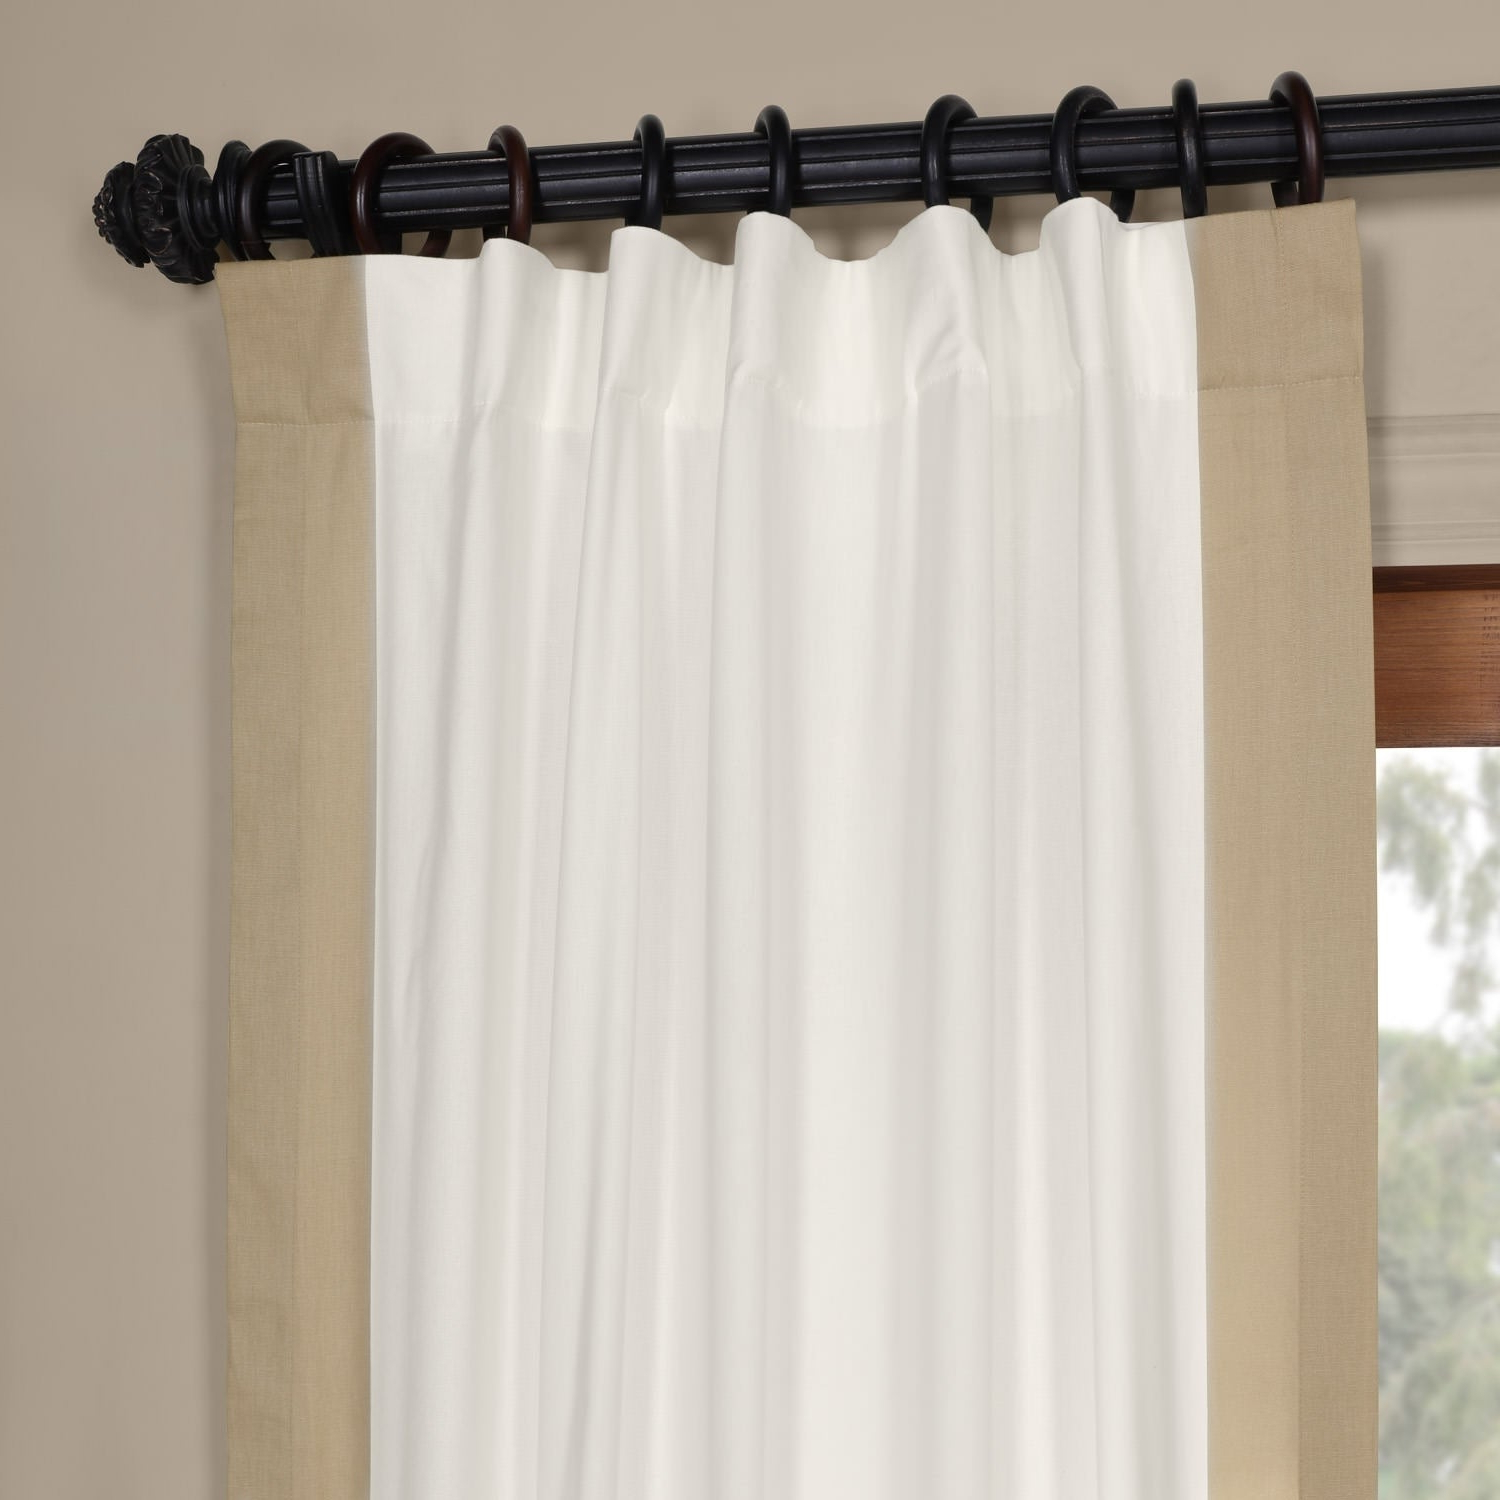 Preferred Vertical Colorblock Panama Curtains Within Exclusive Fabrics Vertical Colorblock Panama Curtain (View 9 of 20)